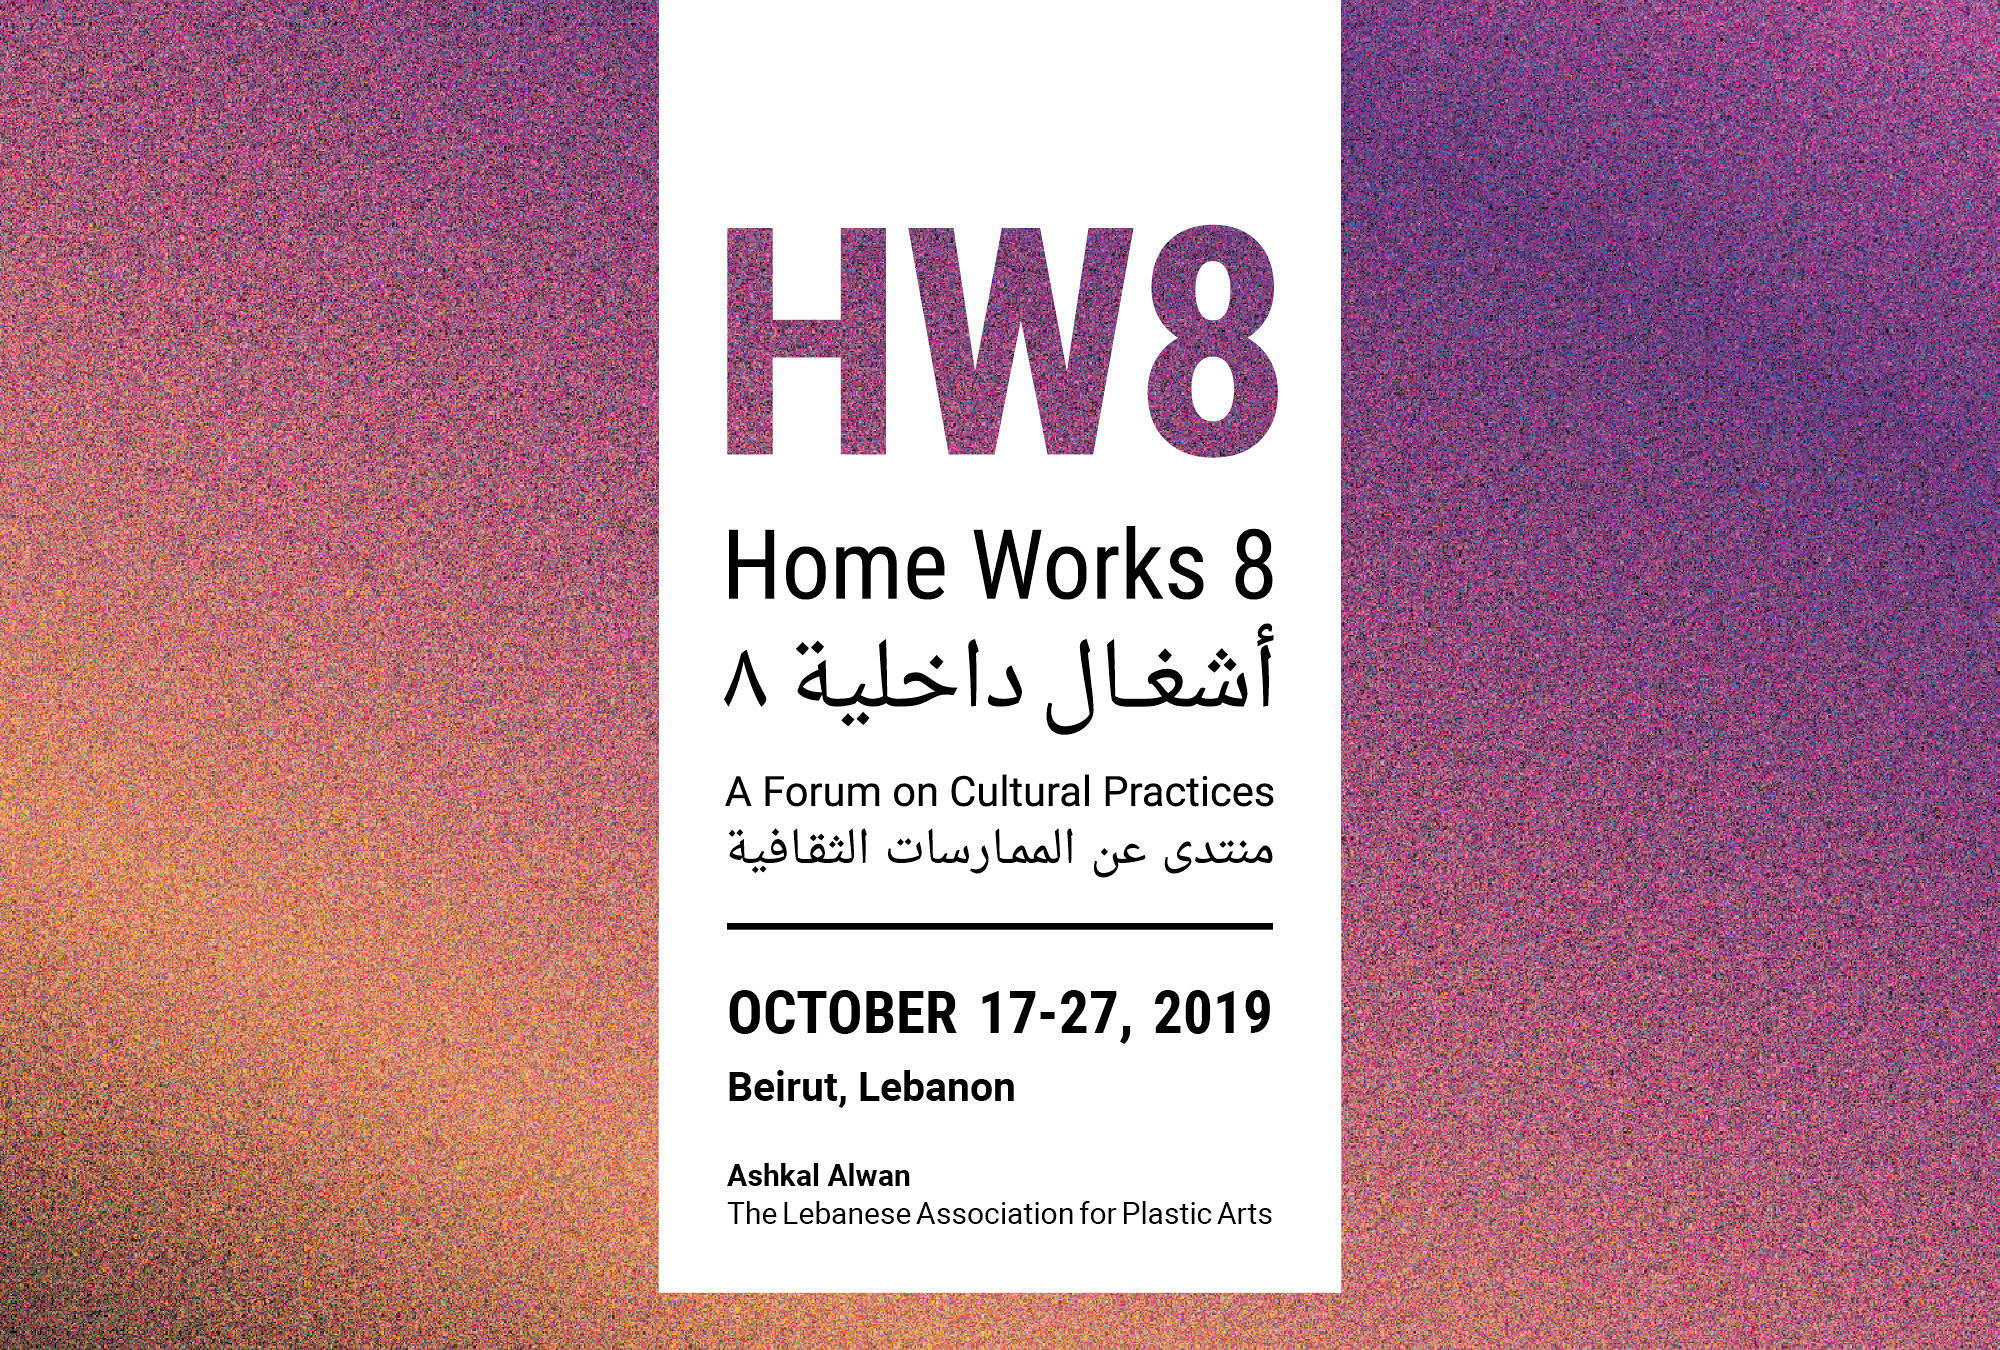 Home Works Forum 8